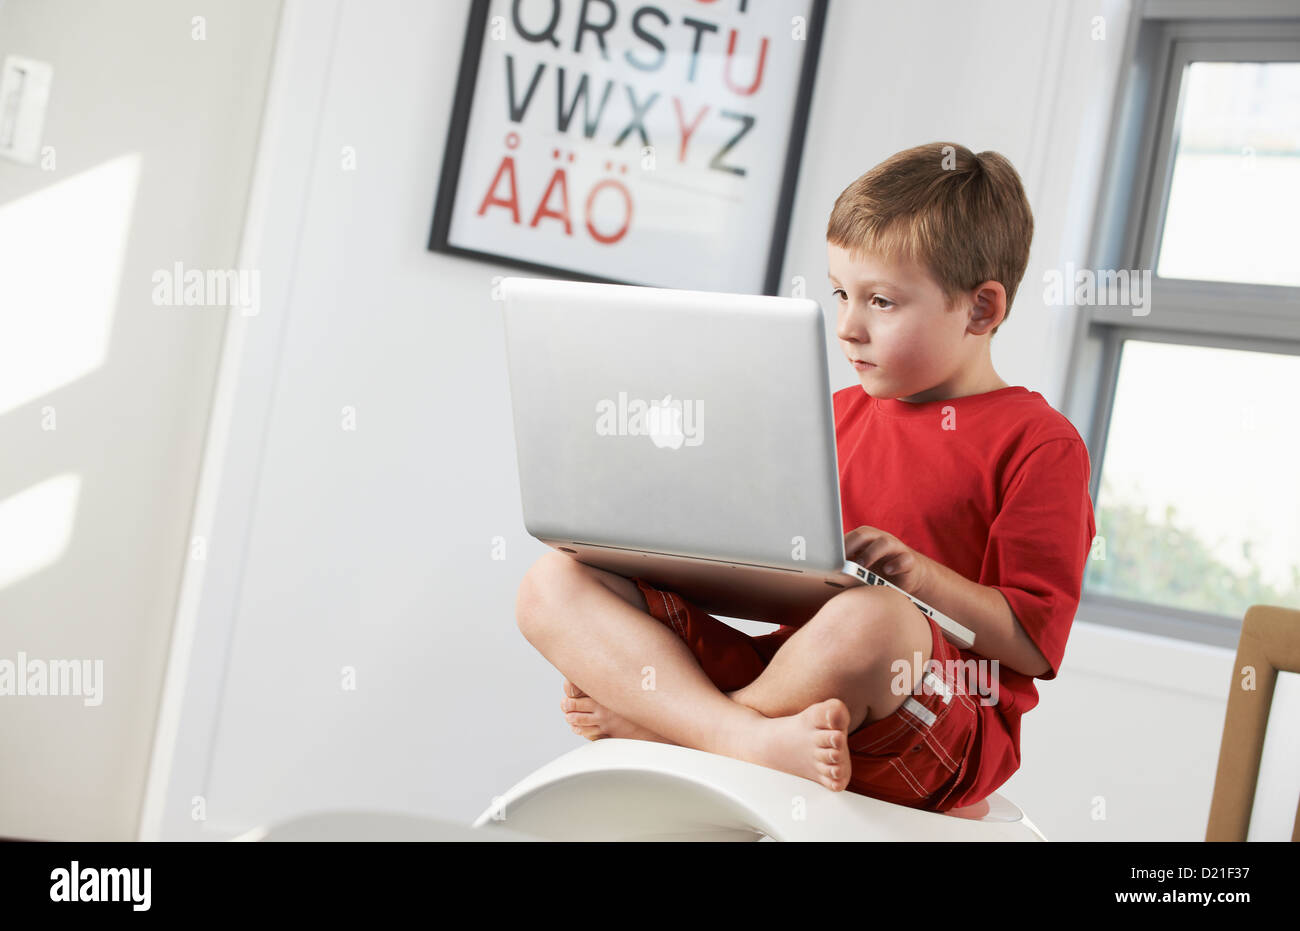 Young boy using laptop at home - Stock Image